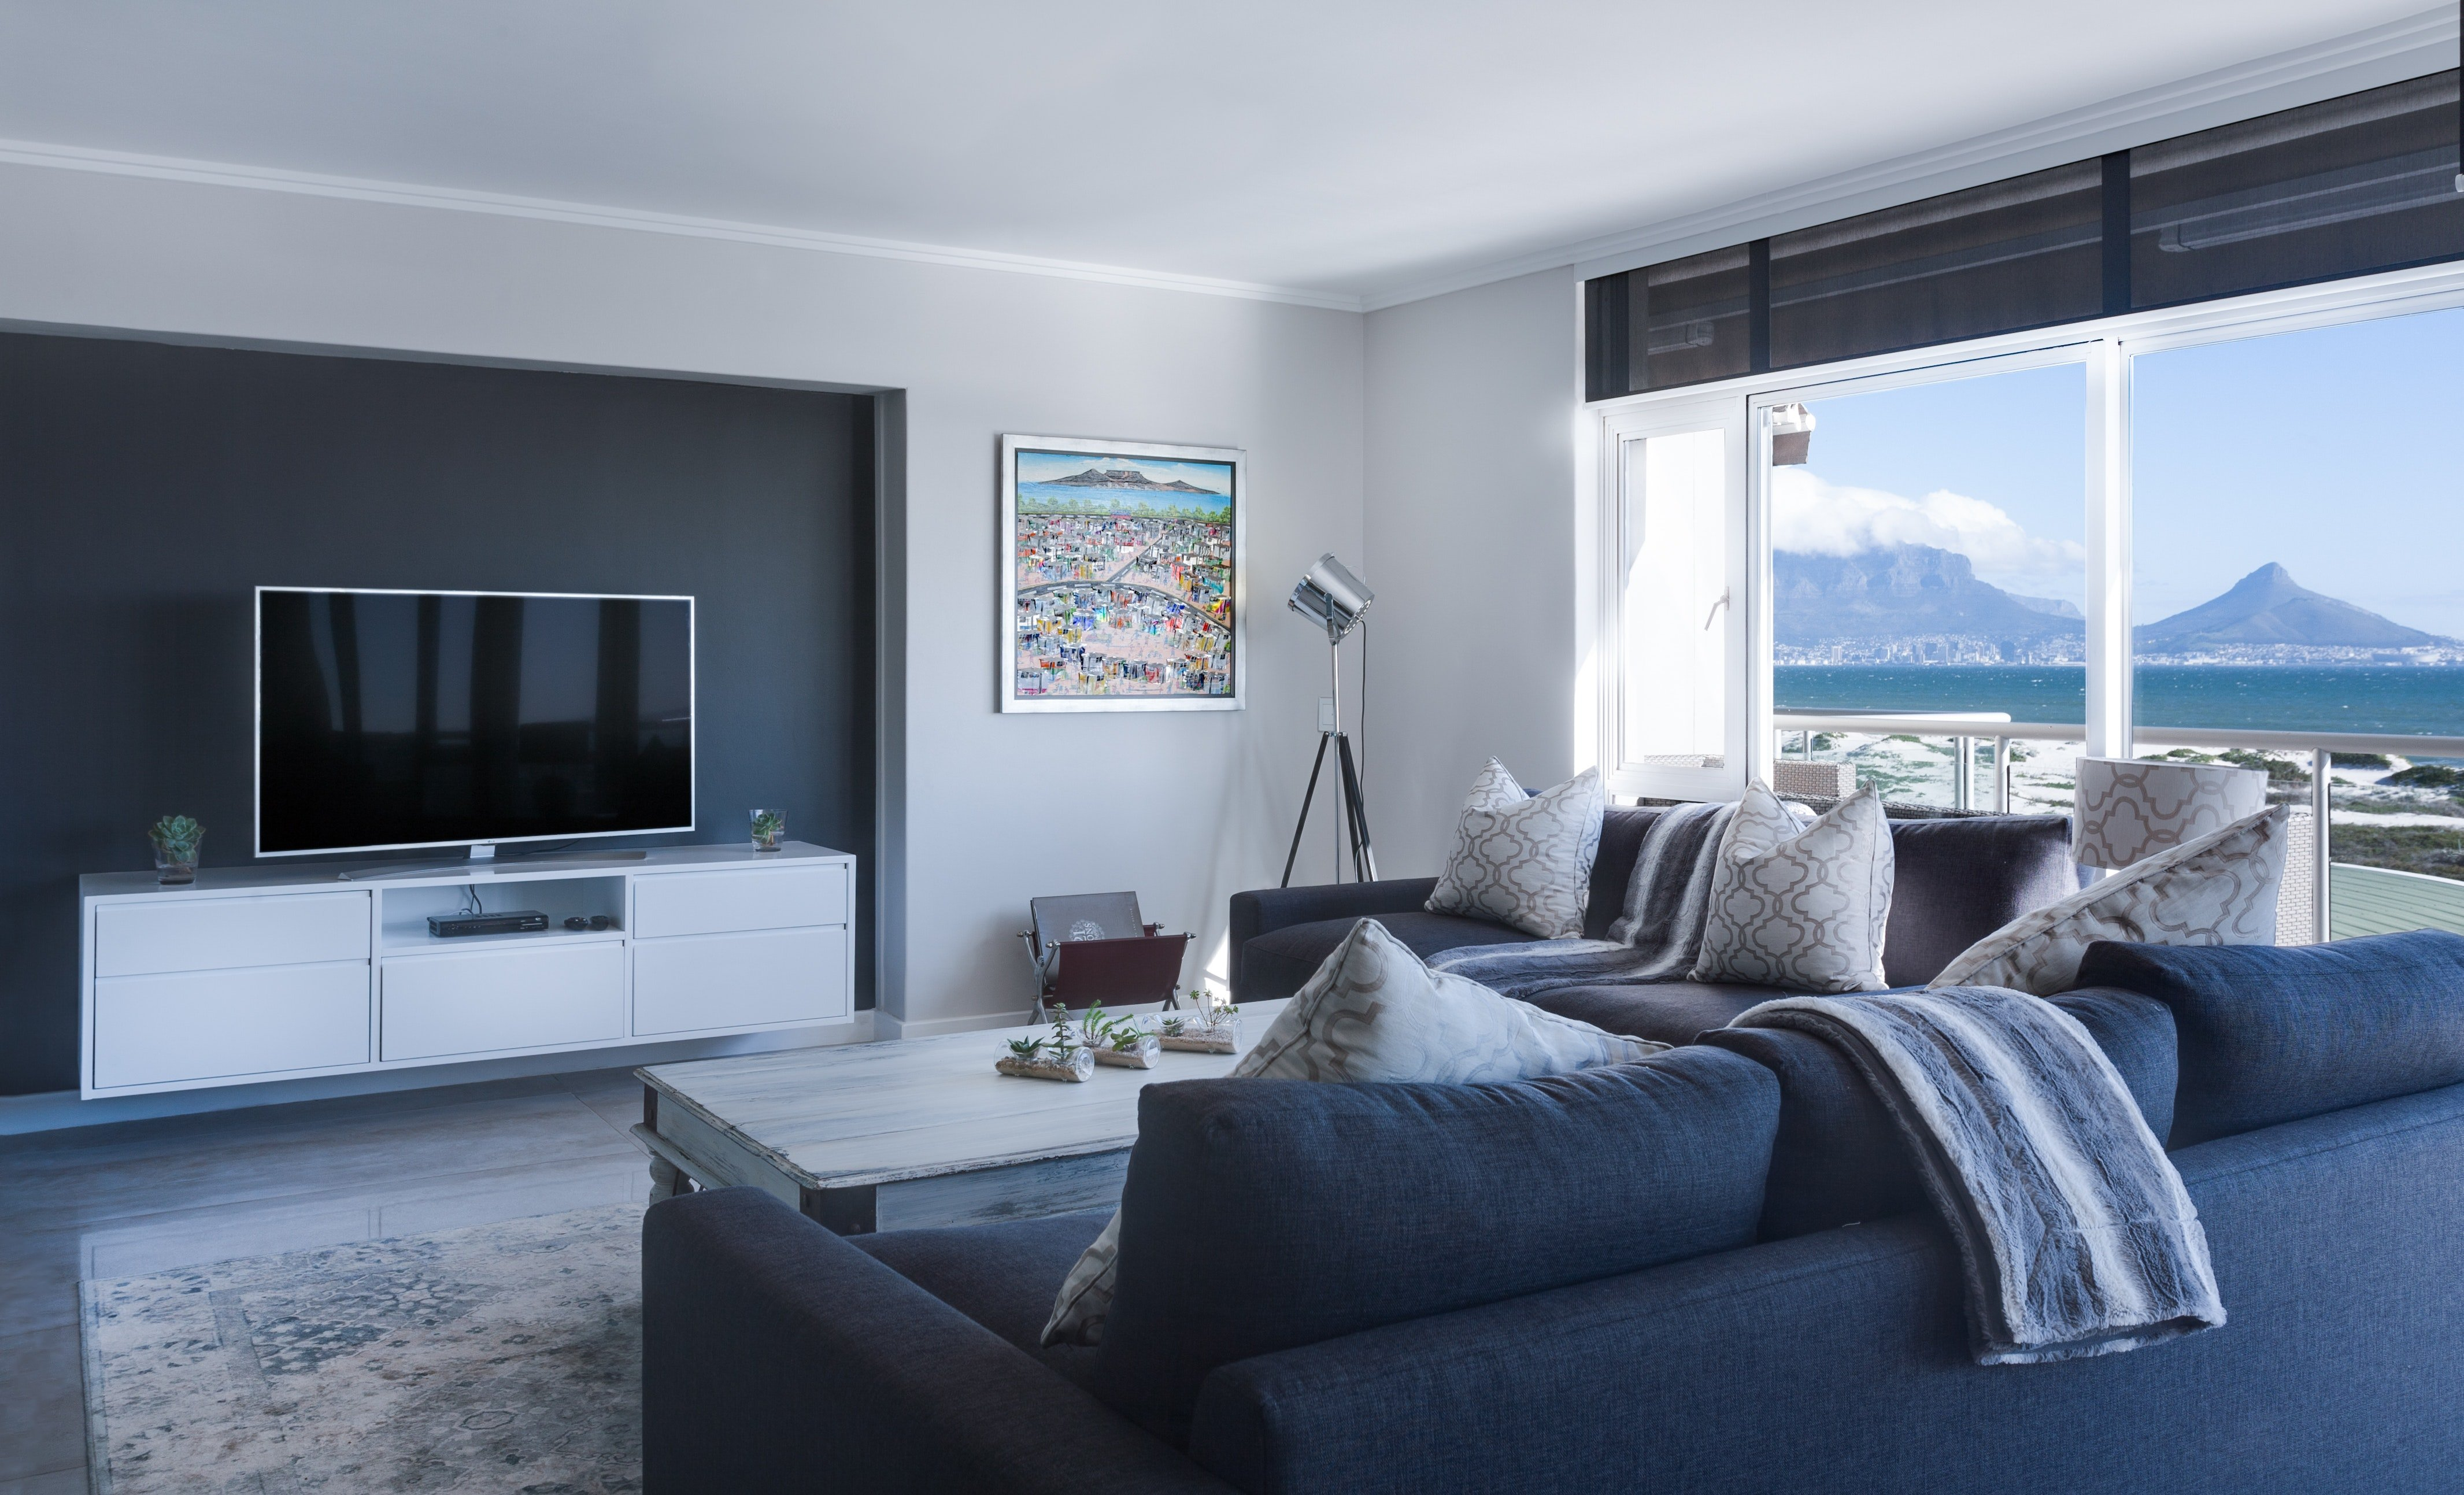 Pictured - A living room with an ocean view | Source: Pexels